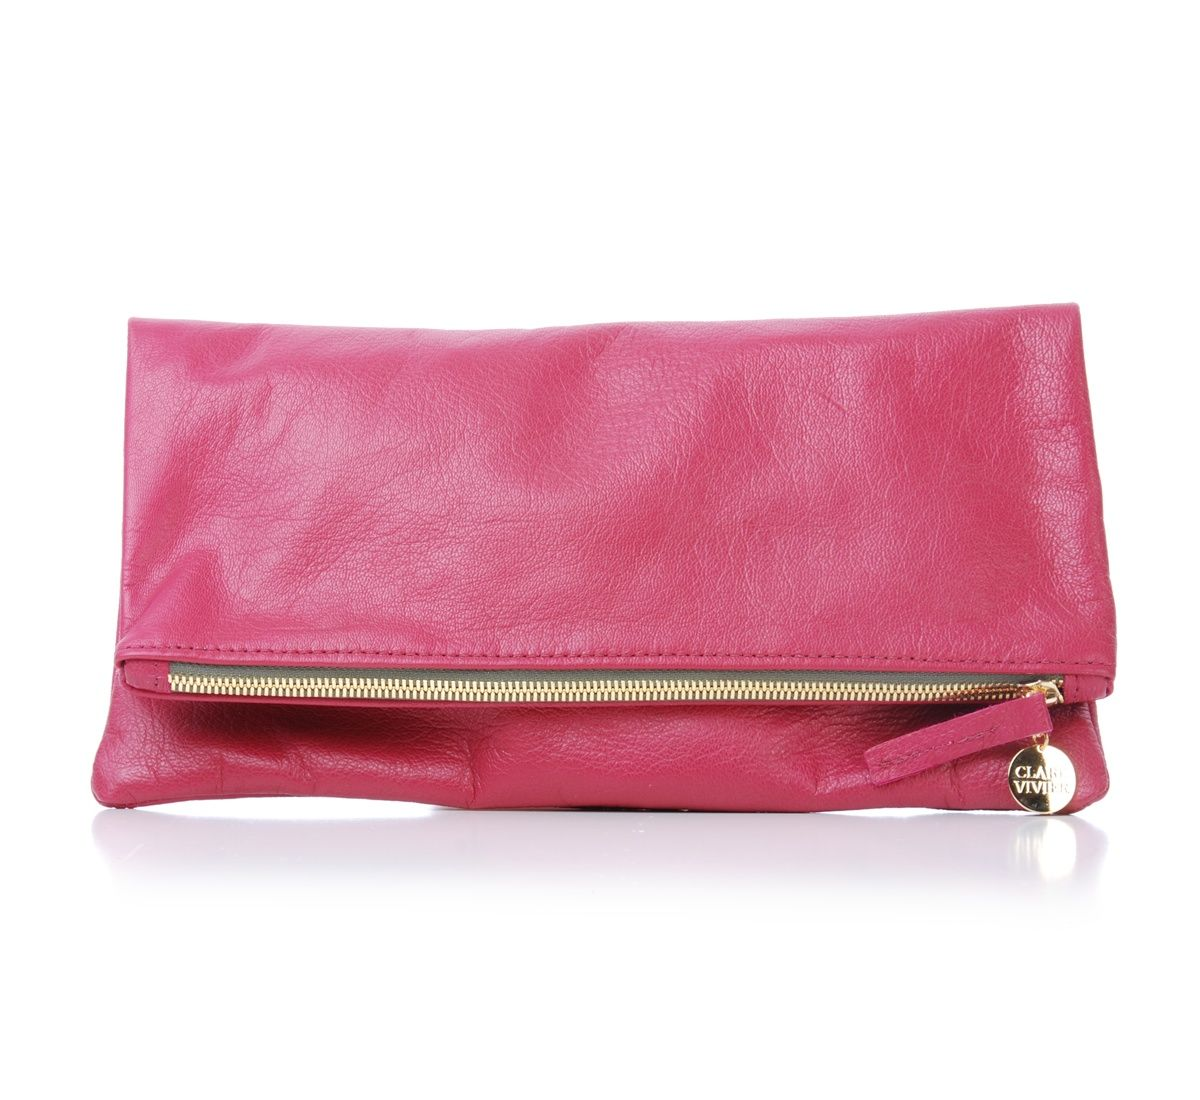 The perfect Spring accent piece -  The foldover clutch by Los Angeles designer Clare Vivier.  Known for her chic, sporty designs and eco friendly materials, this dark pink leather clutch is a versatil...